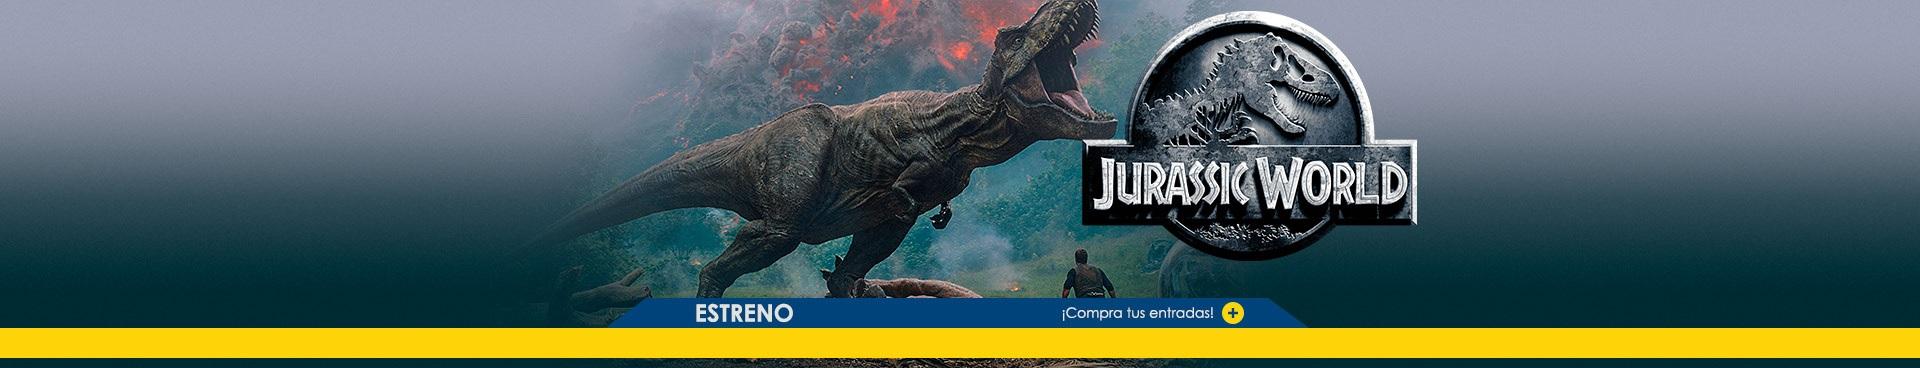 Estreno Jurasic World